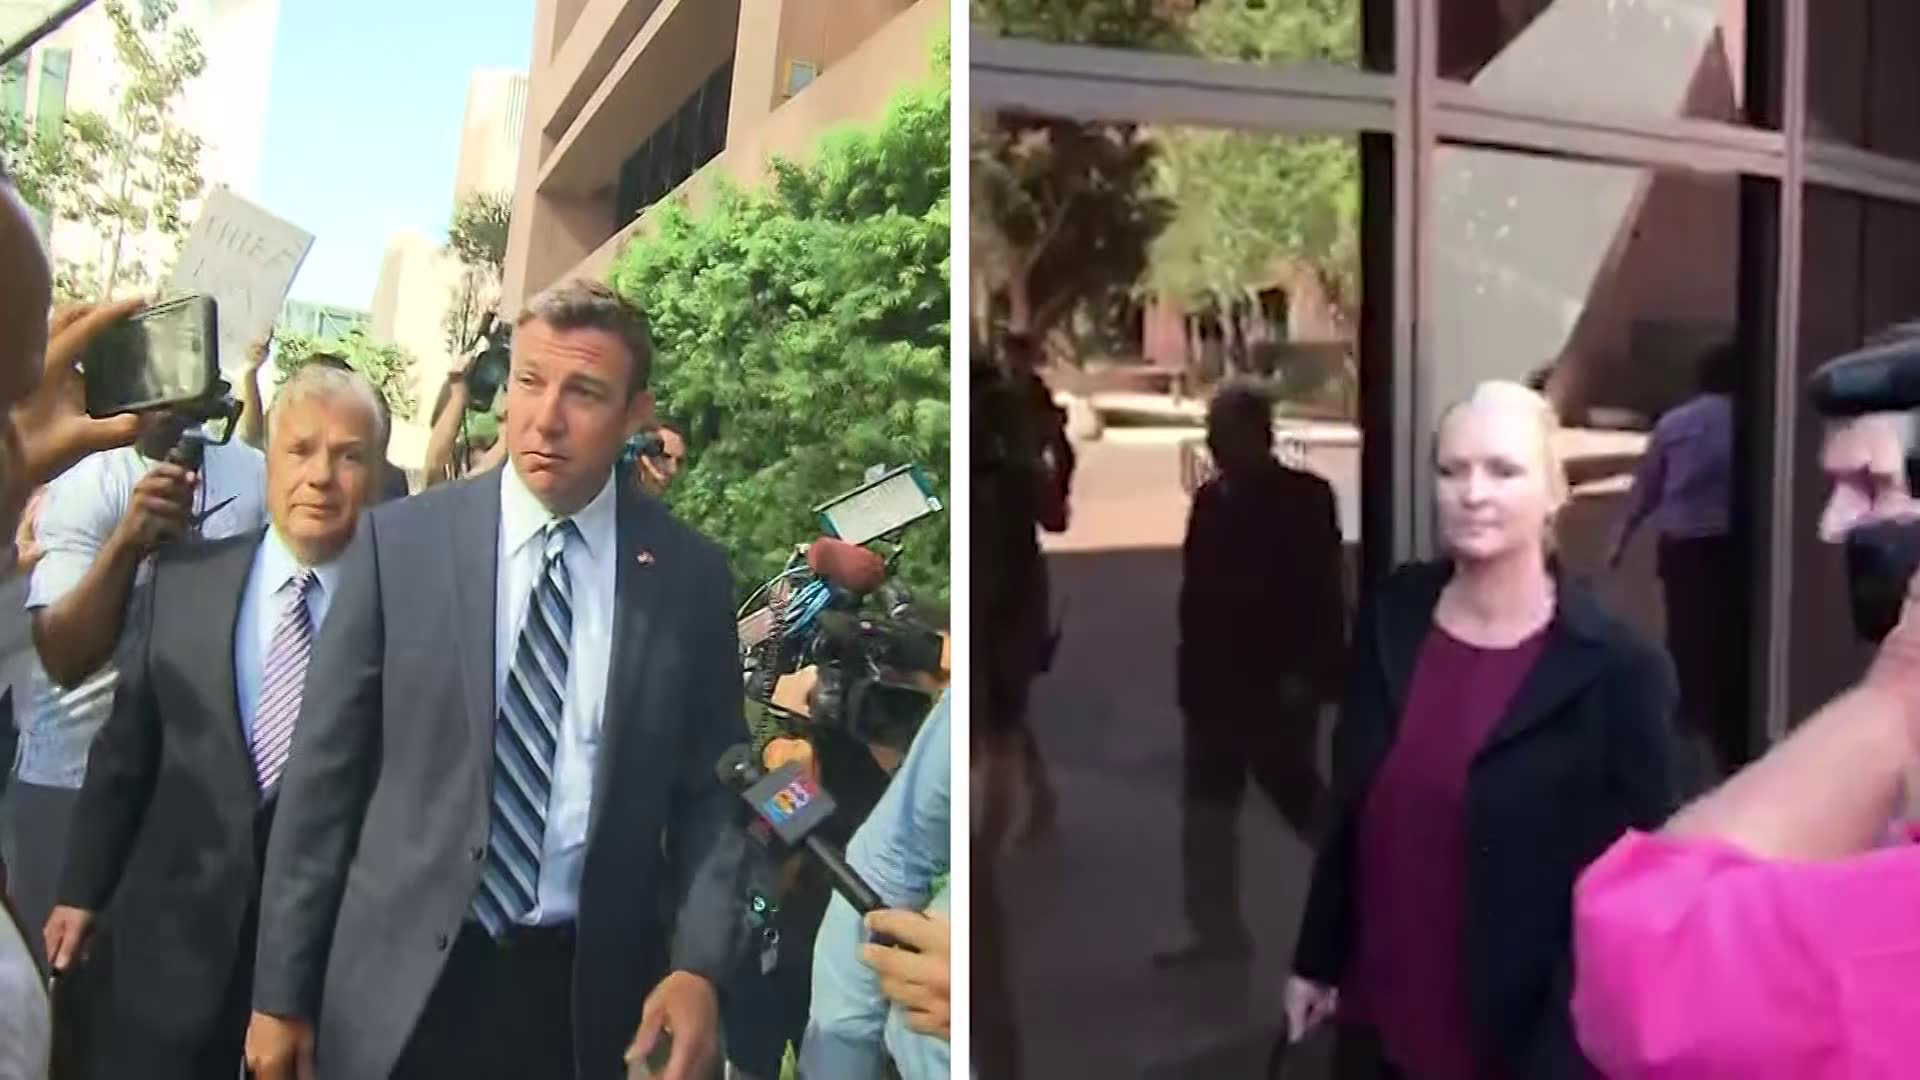 Rep. Duncan Hunter, left, and Margaret Hunter, right, are seen in file photos. (Credit: CNN)